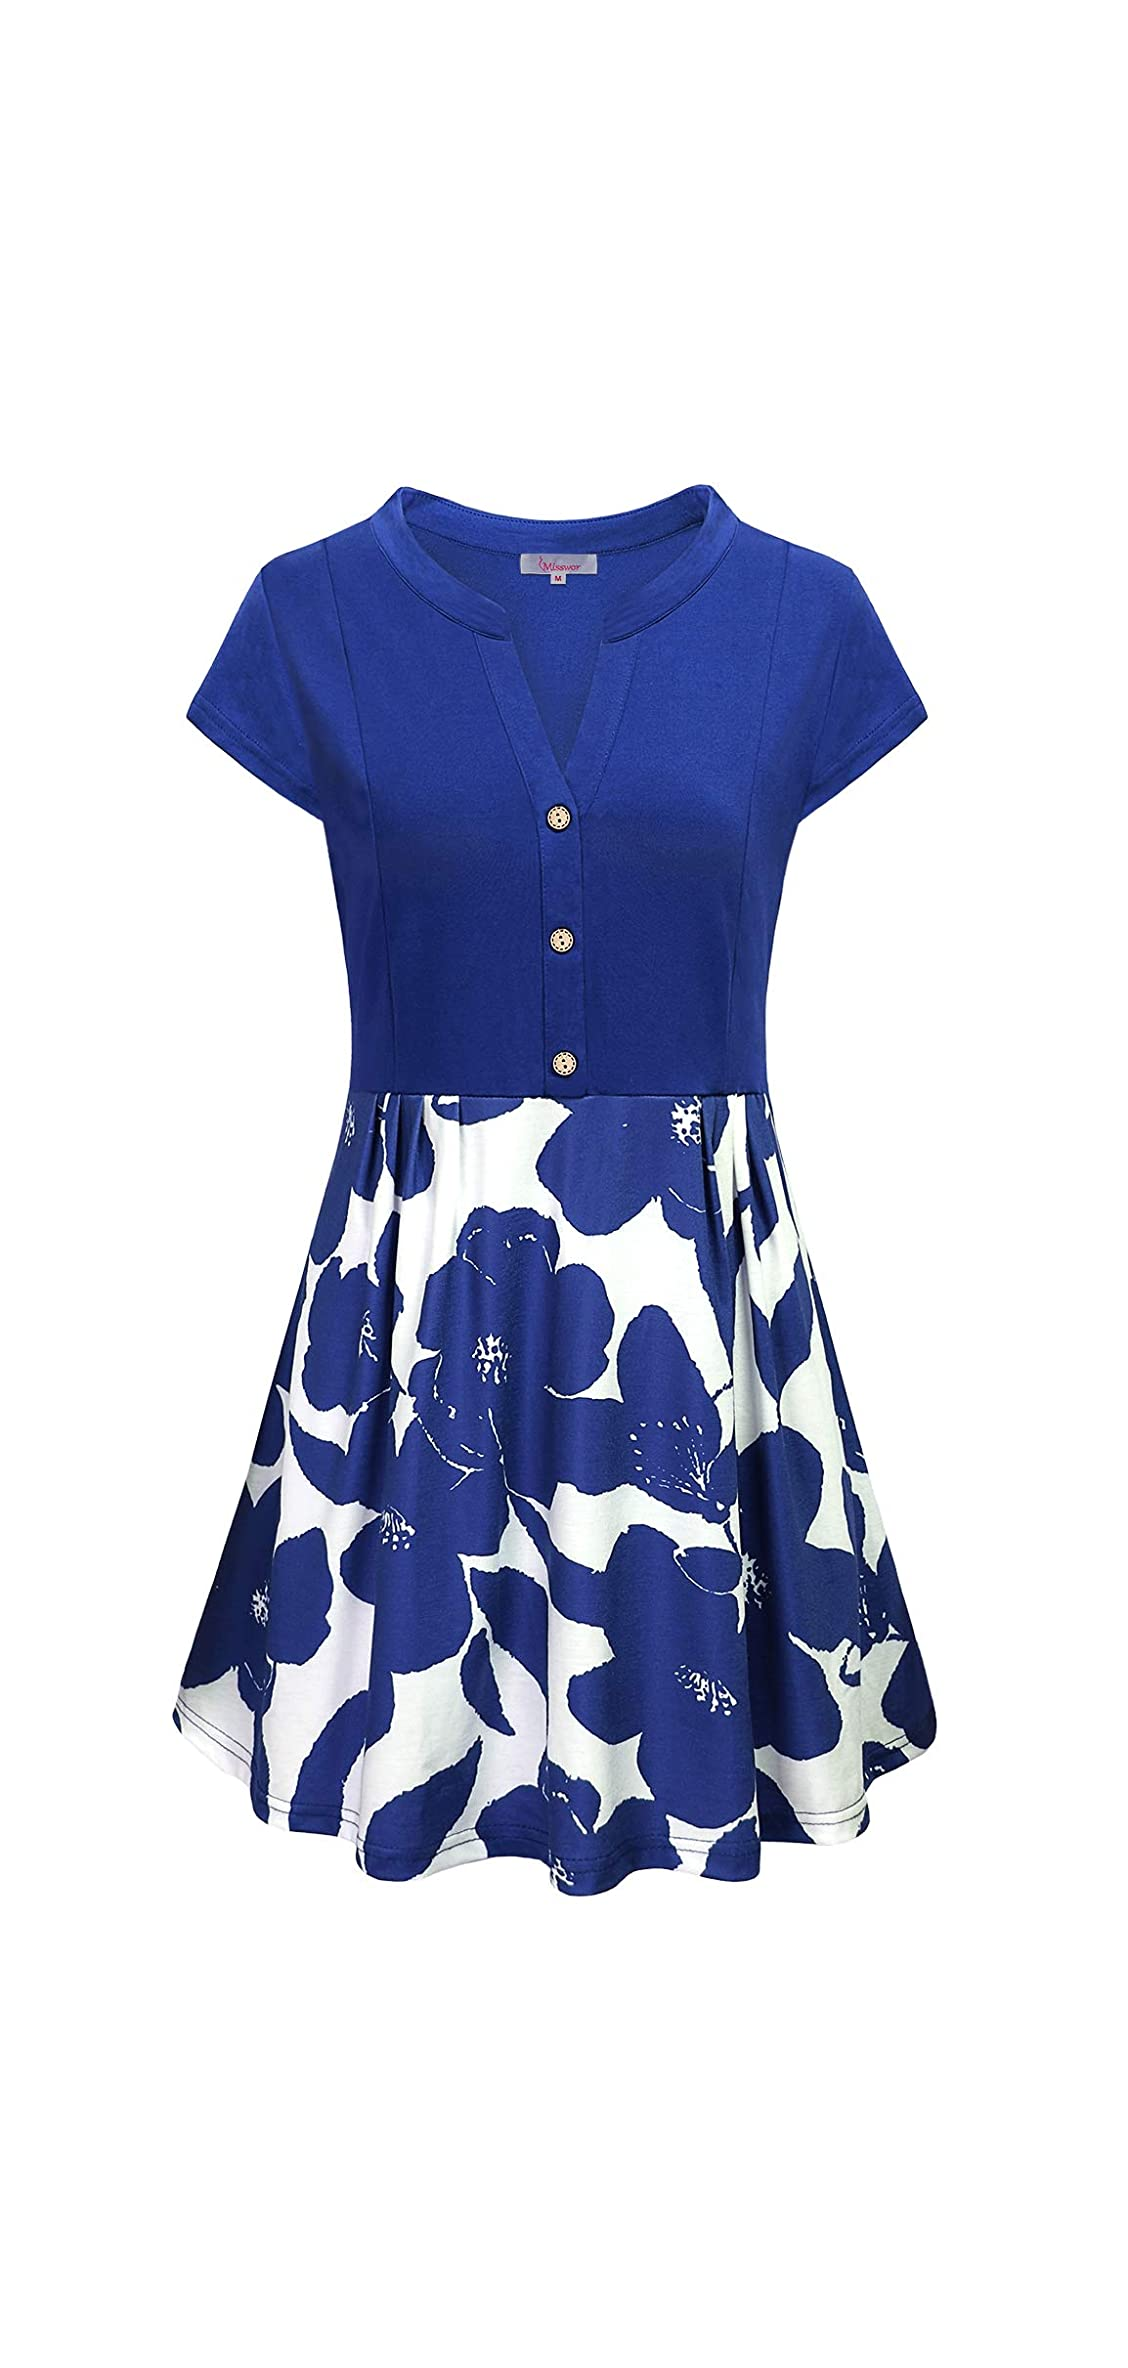 Women's Short Sleeve Color Block Button Pleated Floral